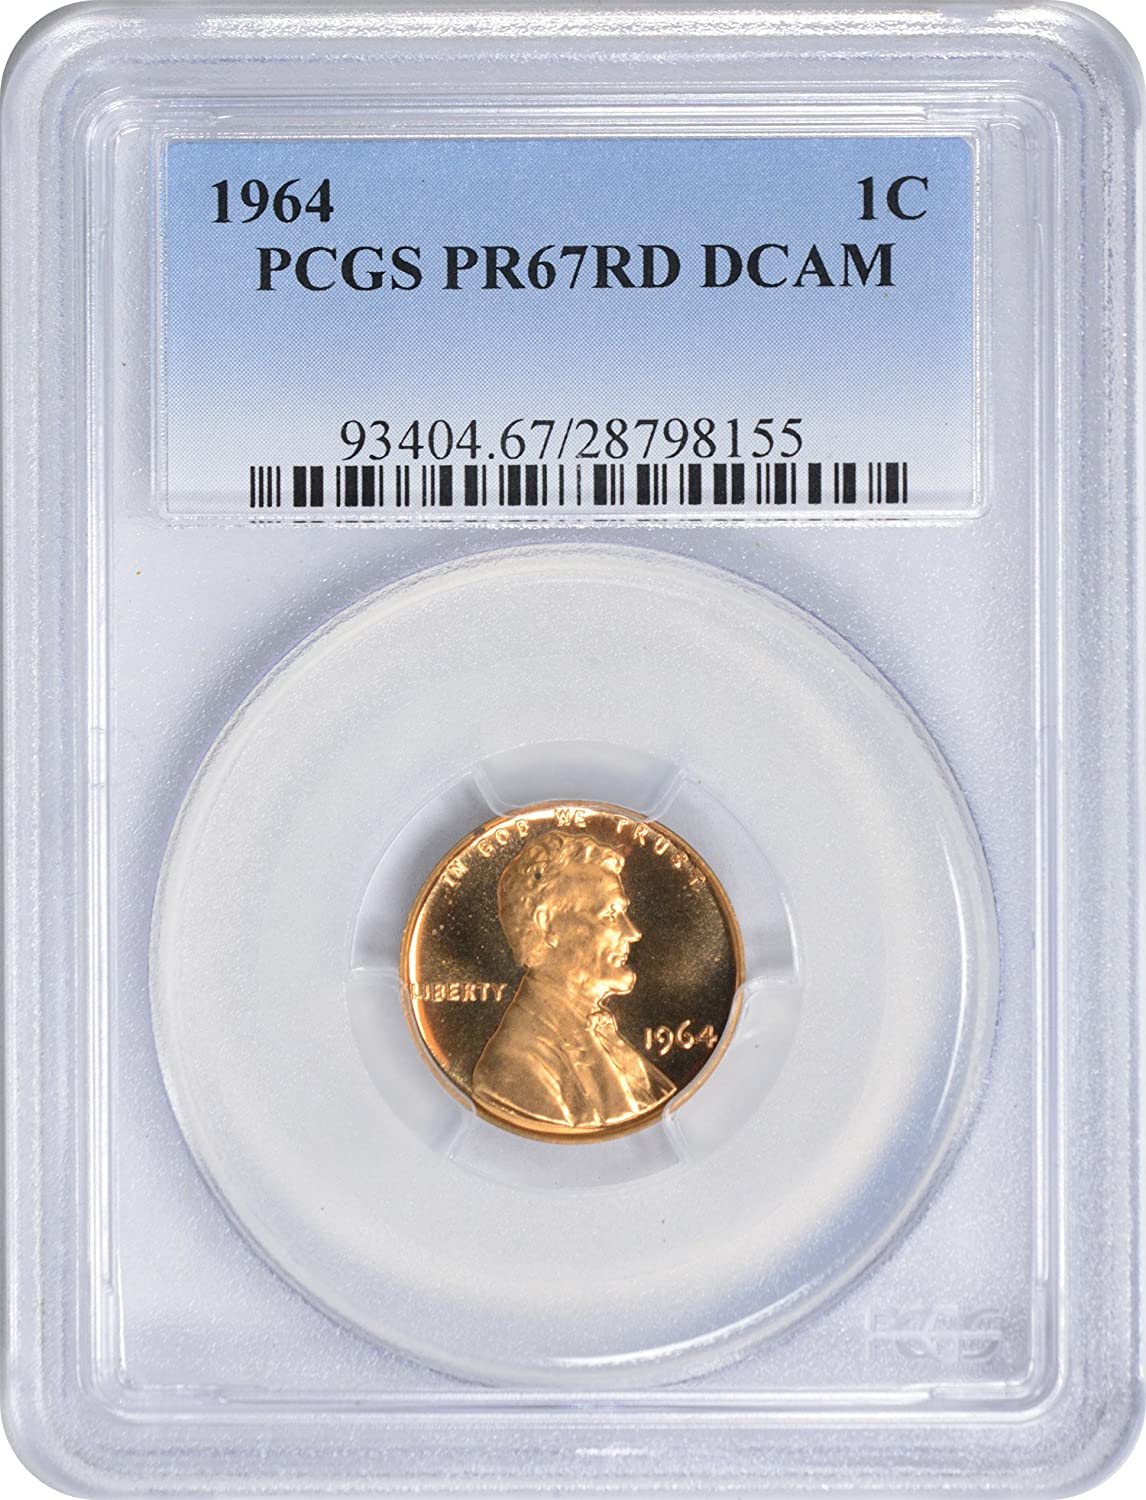 1970-S Lincoln Cent PCGS PR67RD Small Date